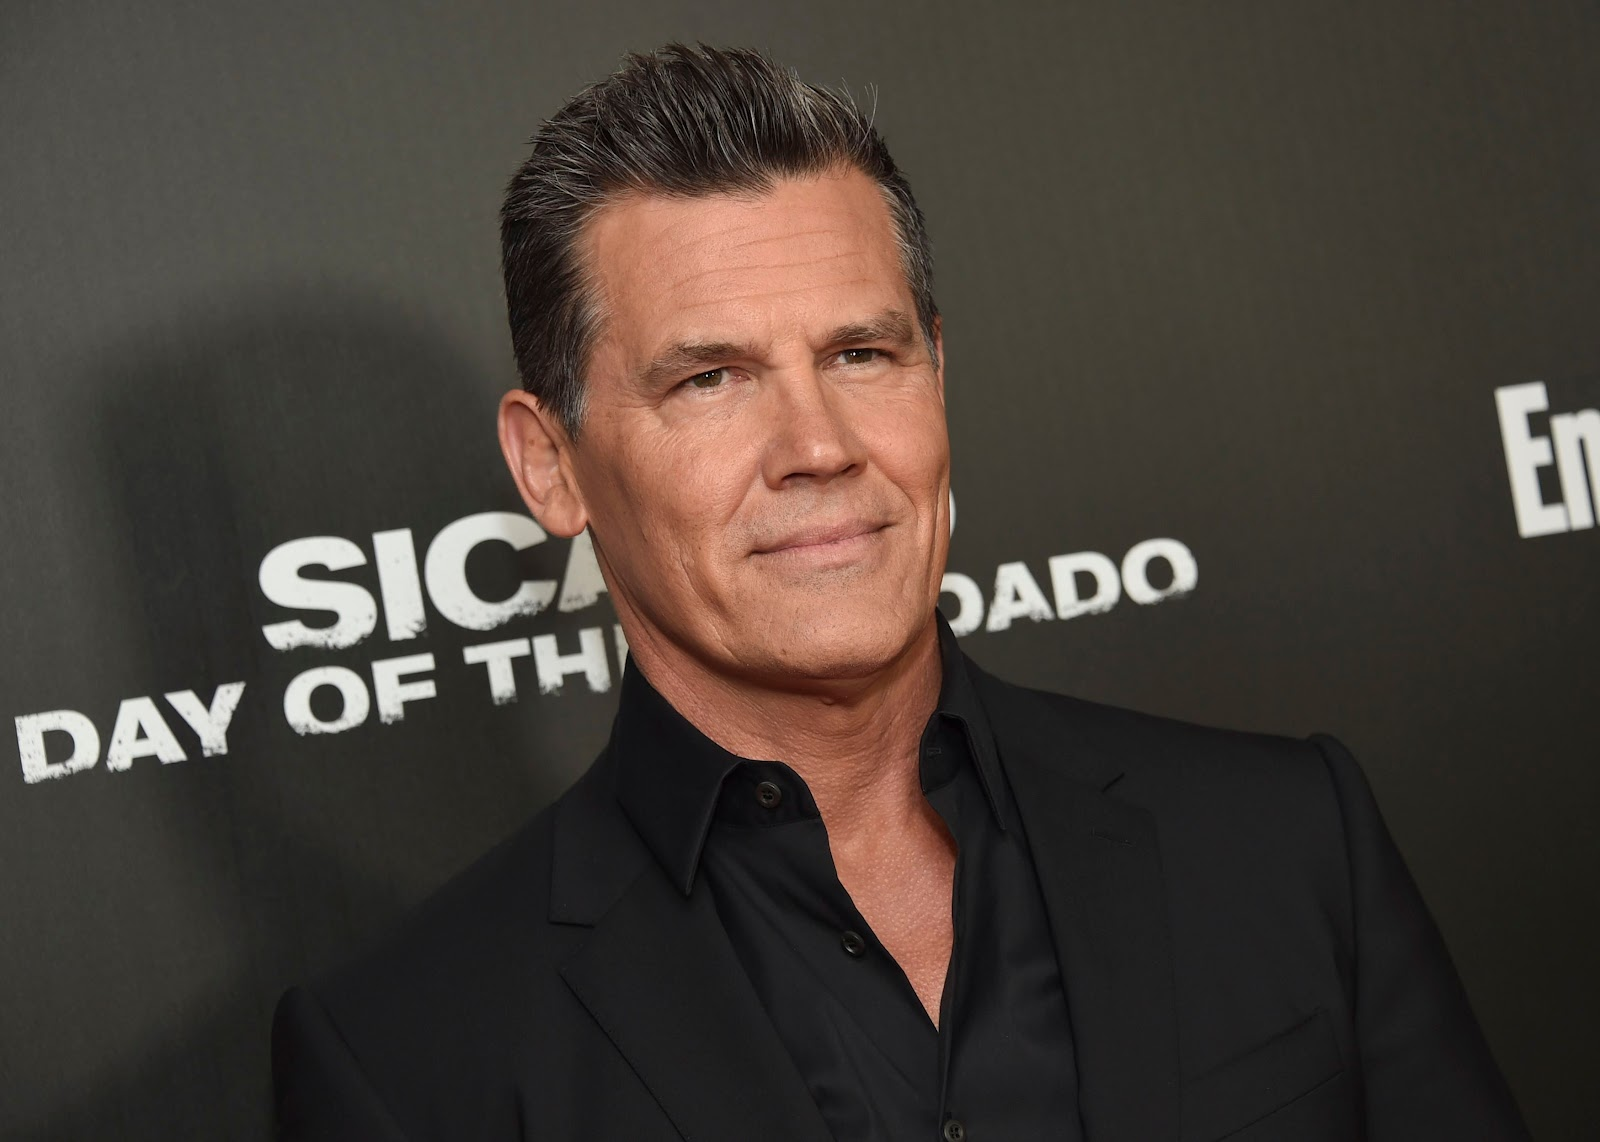 You May Be Bounce Off The Walls With List Of US Actors Net Worth - How About Josh Brolin Net Worth?